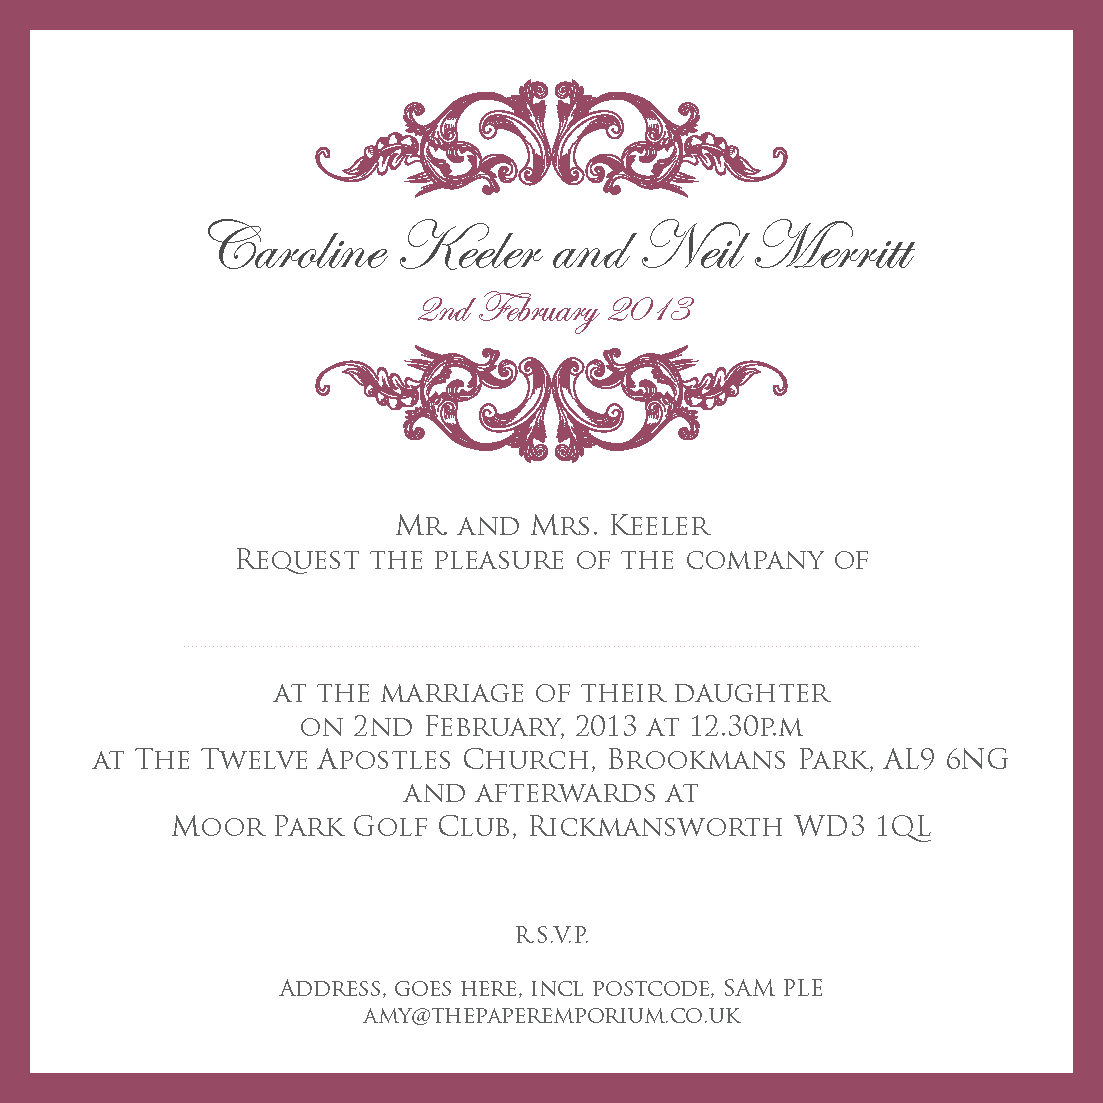 Second Marriage Invitation Wording for luxury invitations design